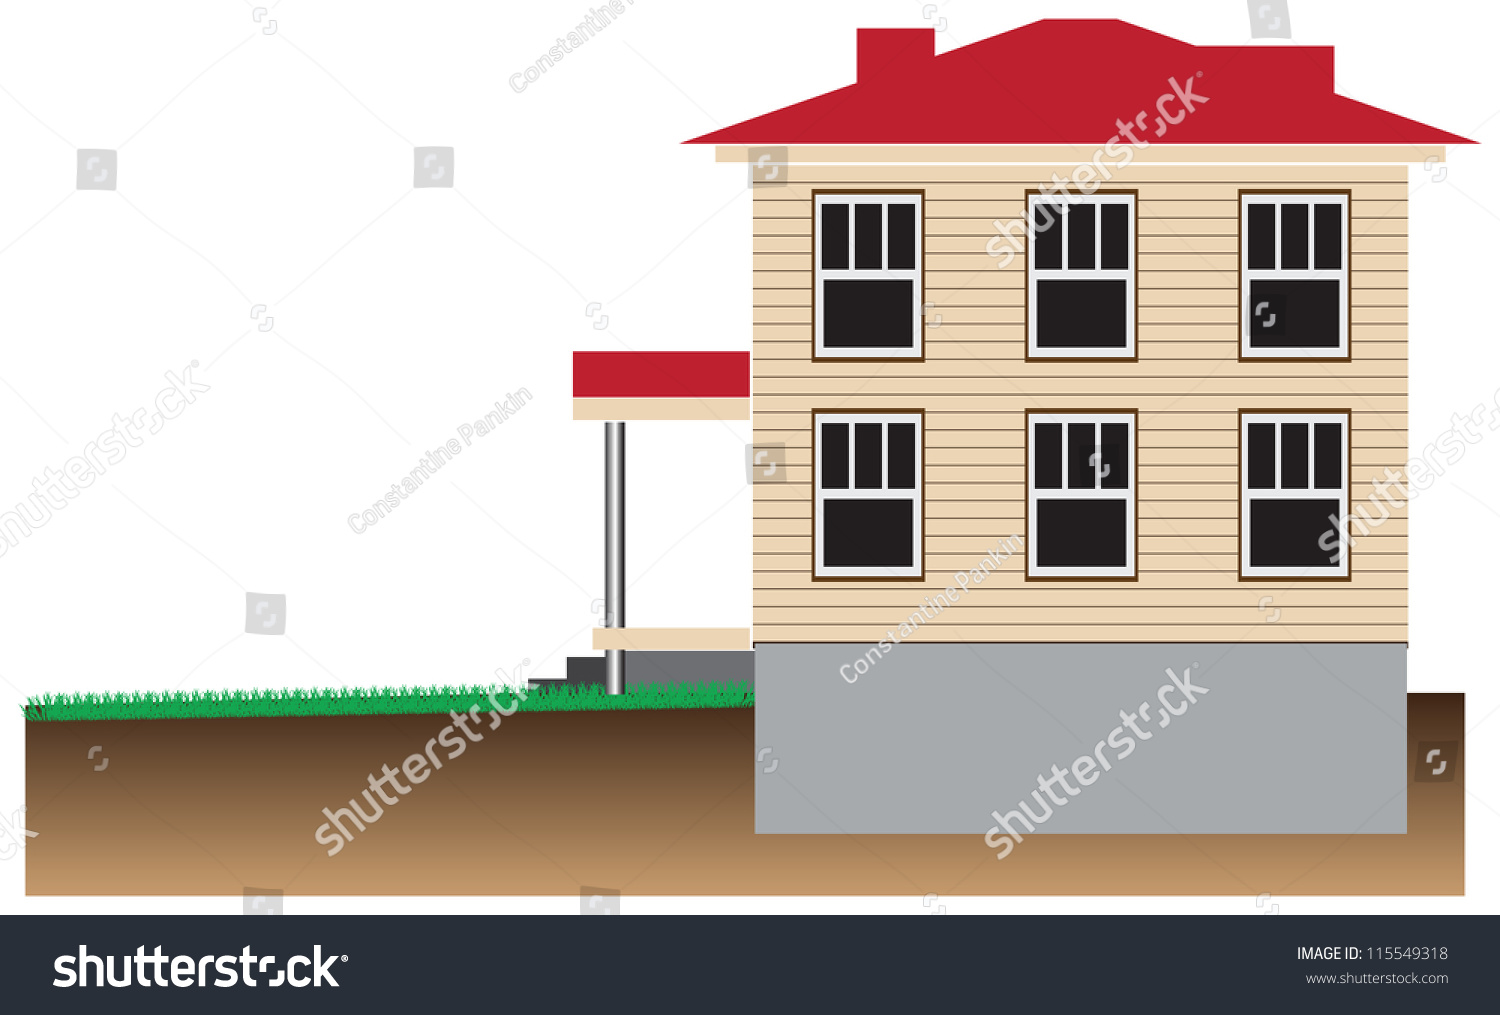 residential house with a basement schematic representation vector